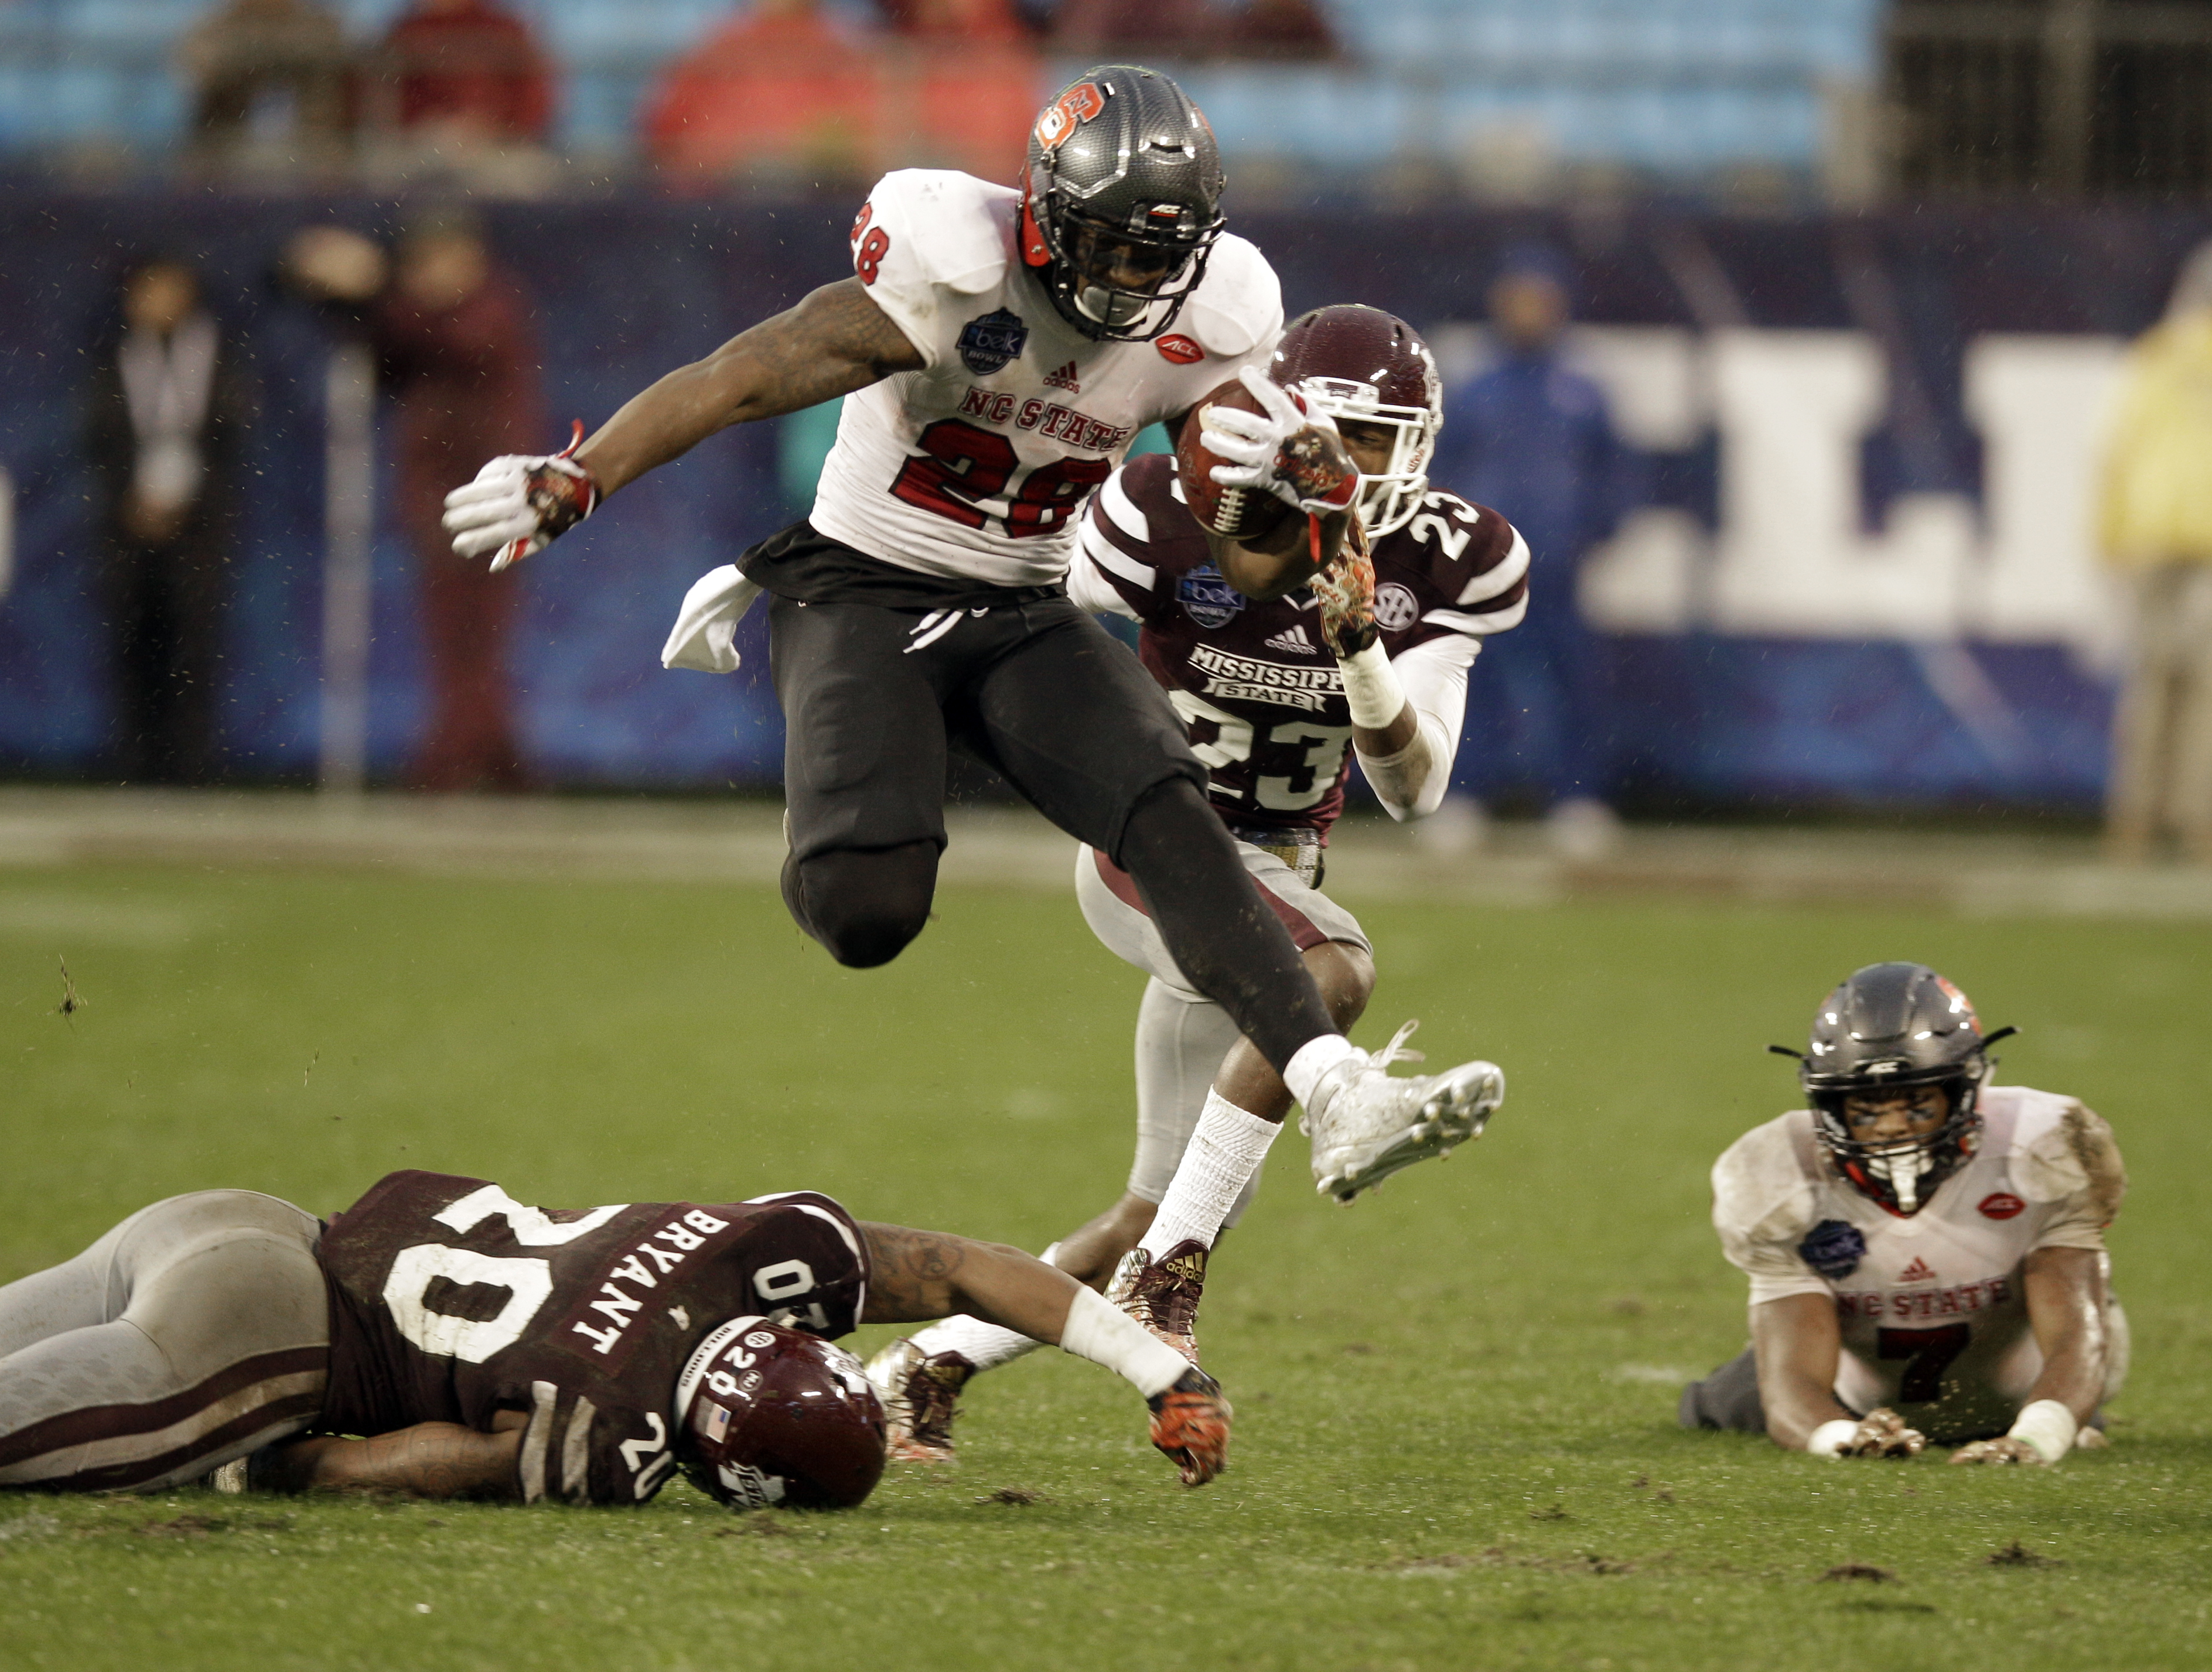 FILE - In this Dec. 30, 2015, file photo, North Carolina State tight end Jaylen Samuels (28) runs for a touchdown against Mississippi State in the first half of the Belk Bowl NCAA college football game, in Charlotte, N.C. Wolfpack offensive coordinator El